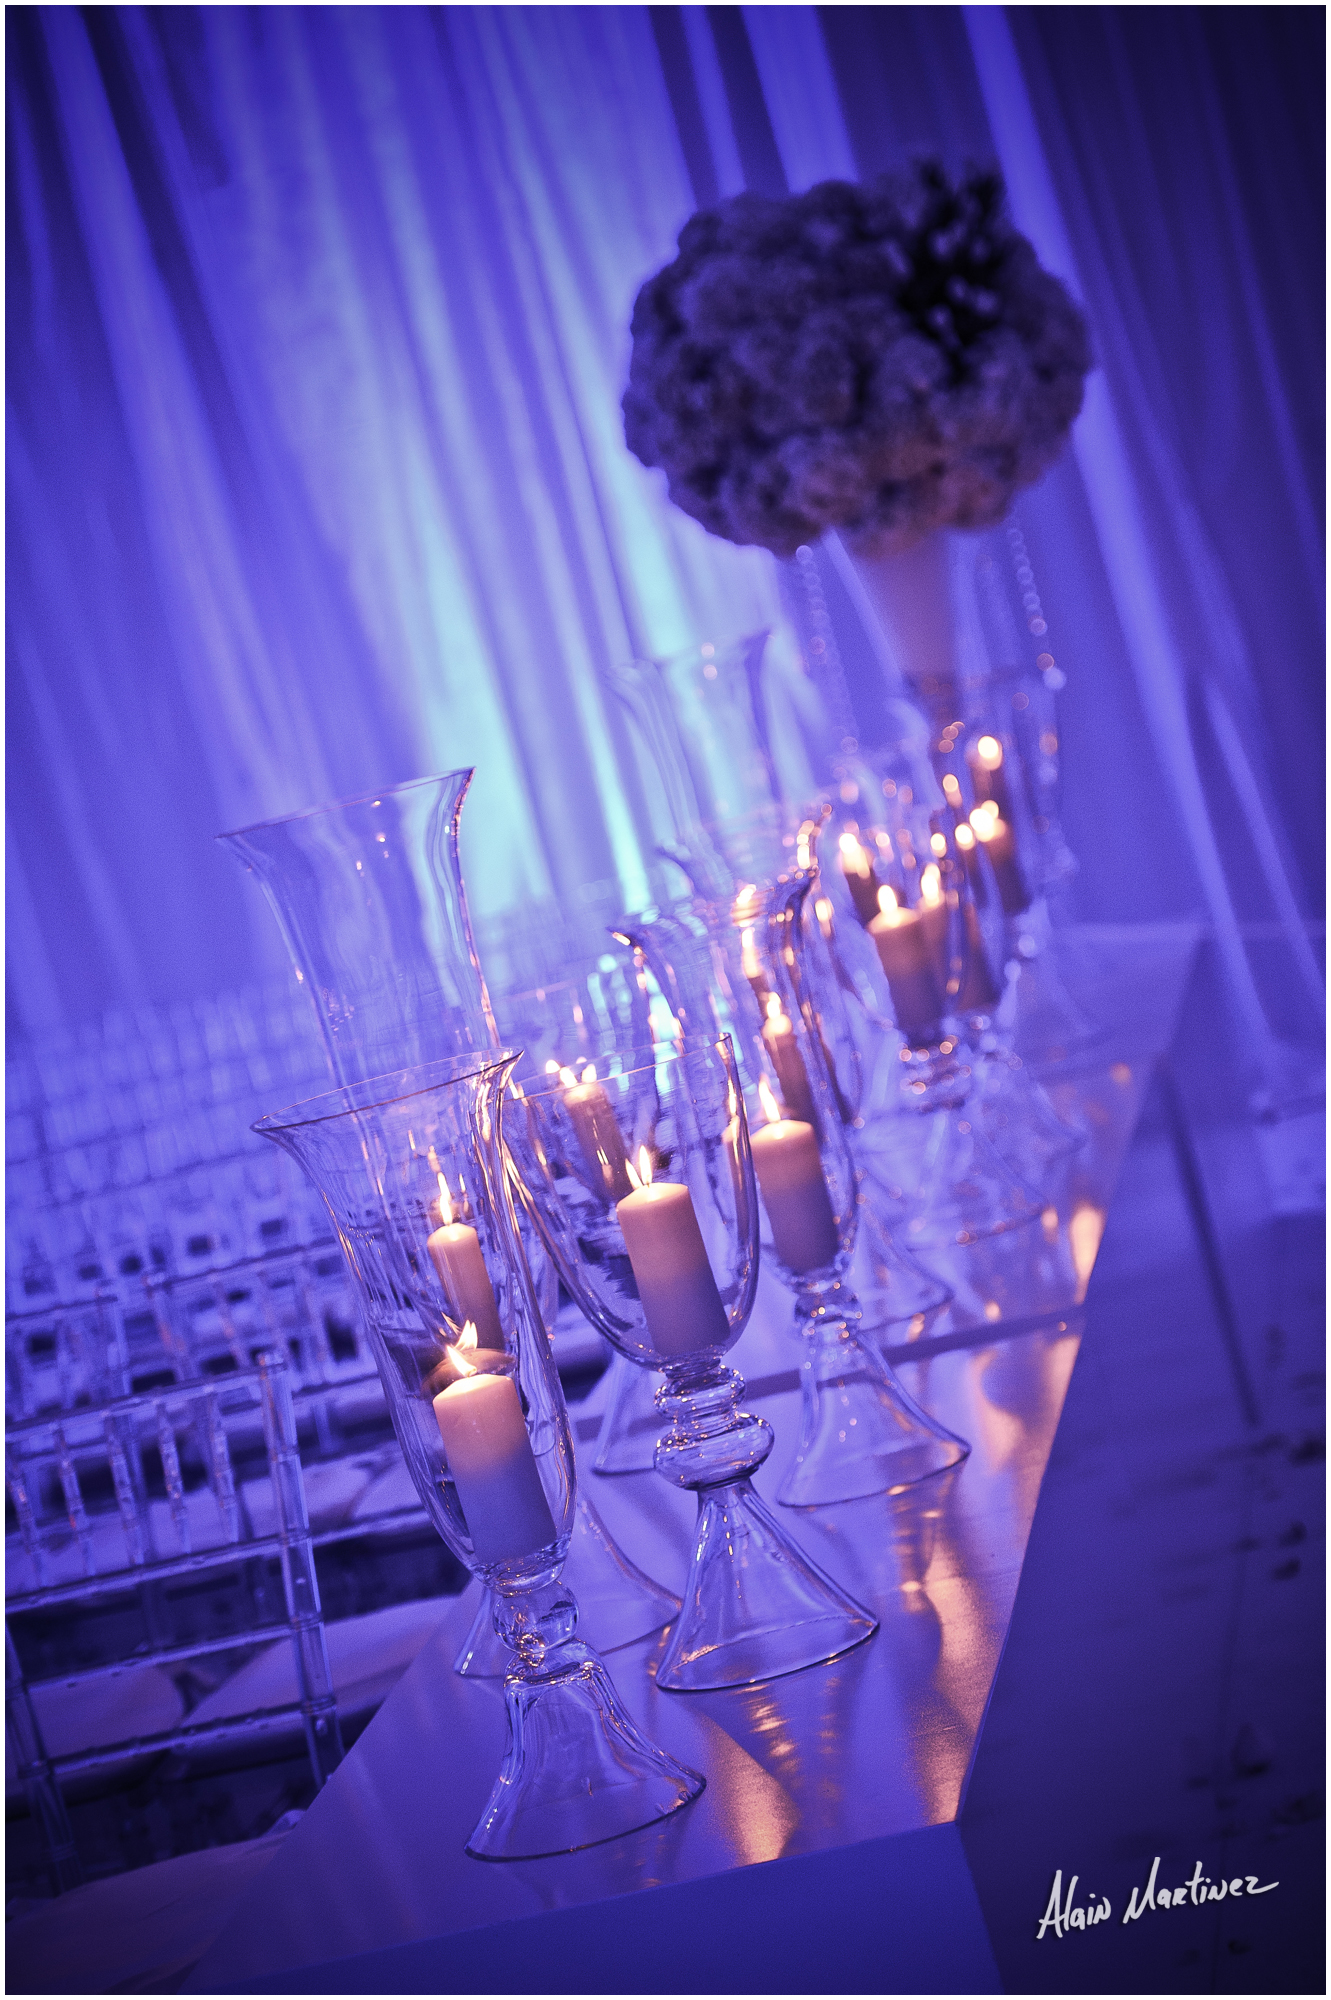 Romantic Moonlight Wedding - Carrie Zack Events